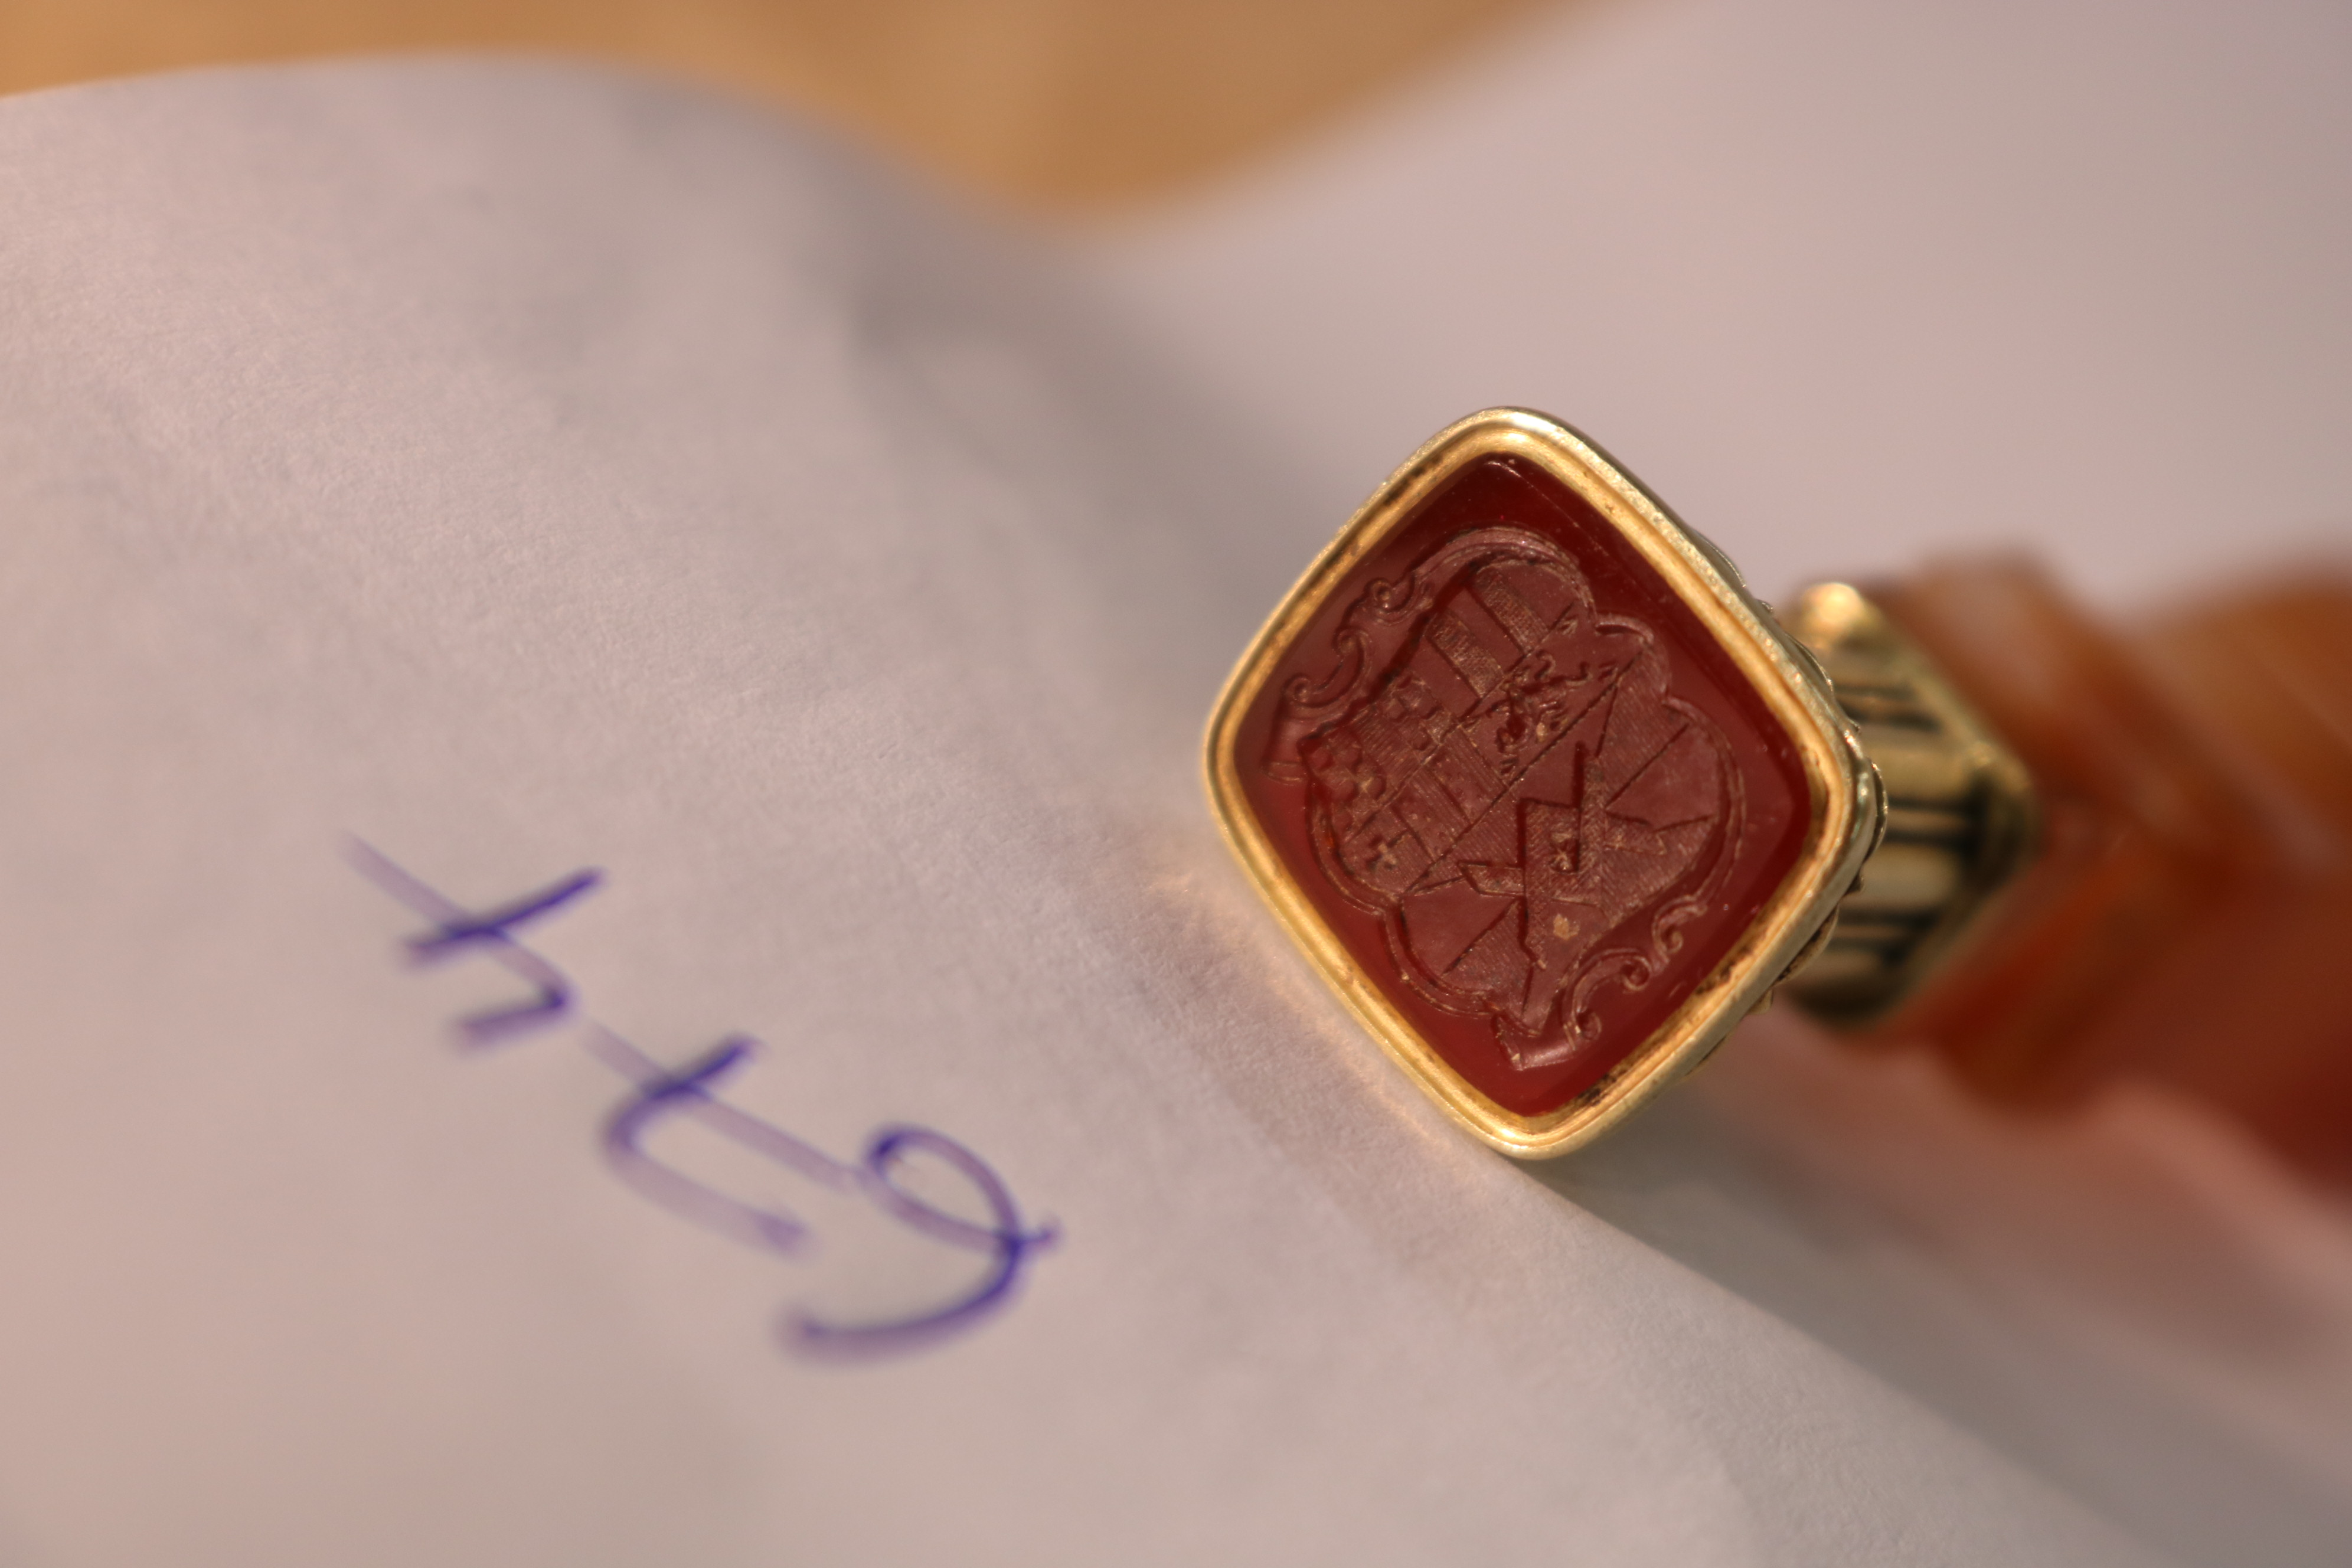 Lot 674 - A VICTORIAN GOLD-MOUNTED AGATE SEAL with an agate matrix & intaglio coat of arms, unmarked, and a